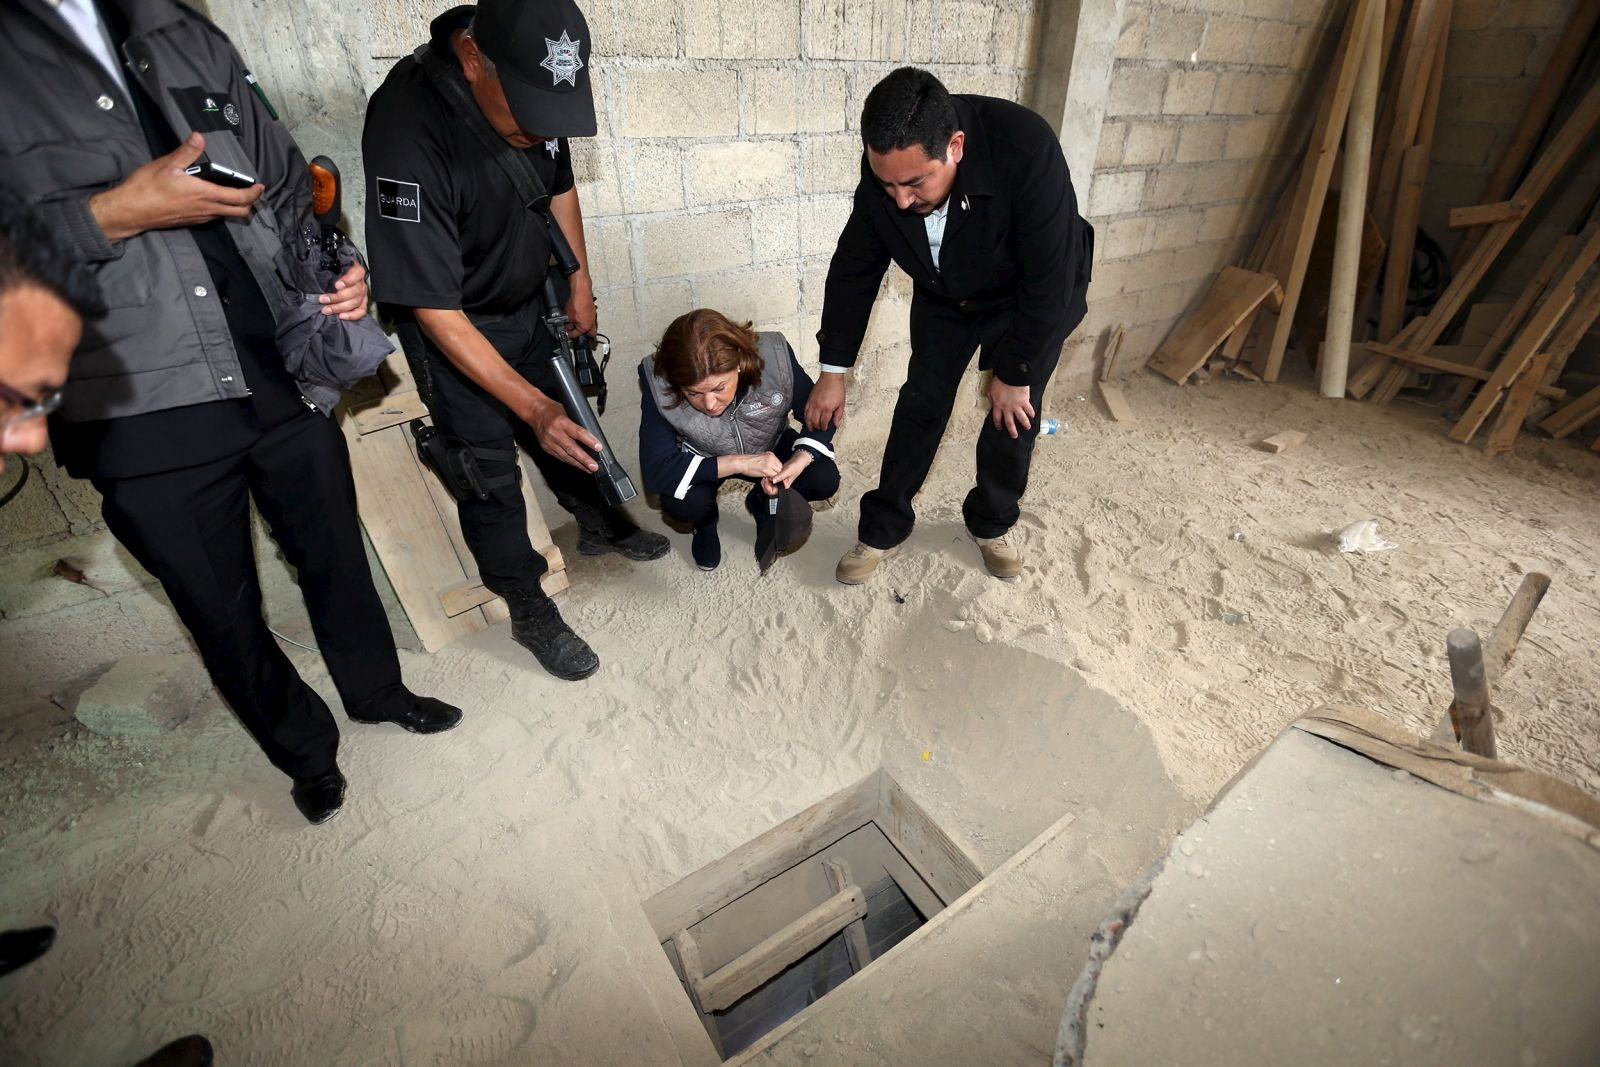 drug lord escapes Prison via tunnel